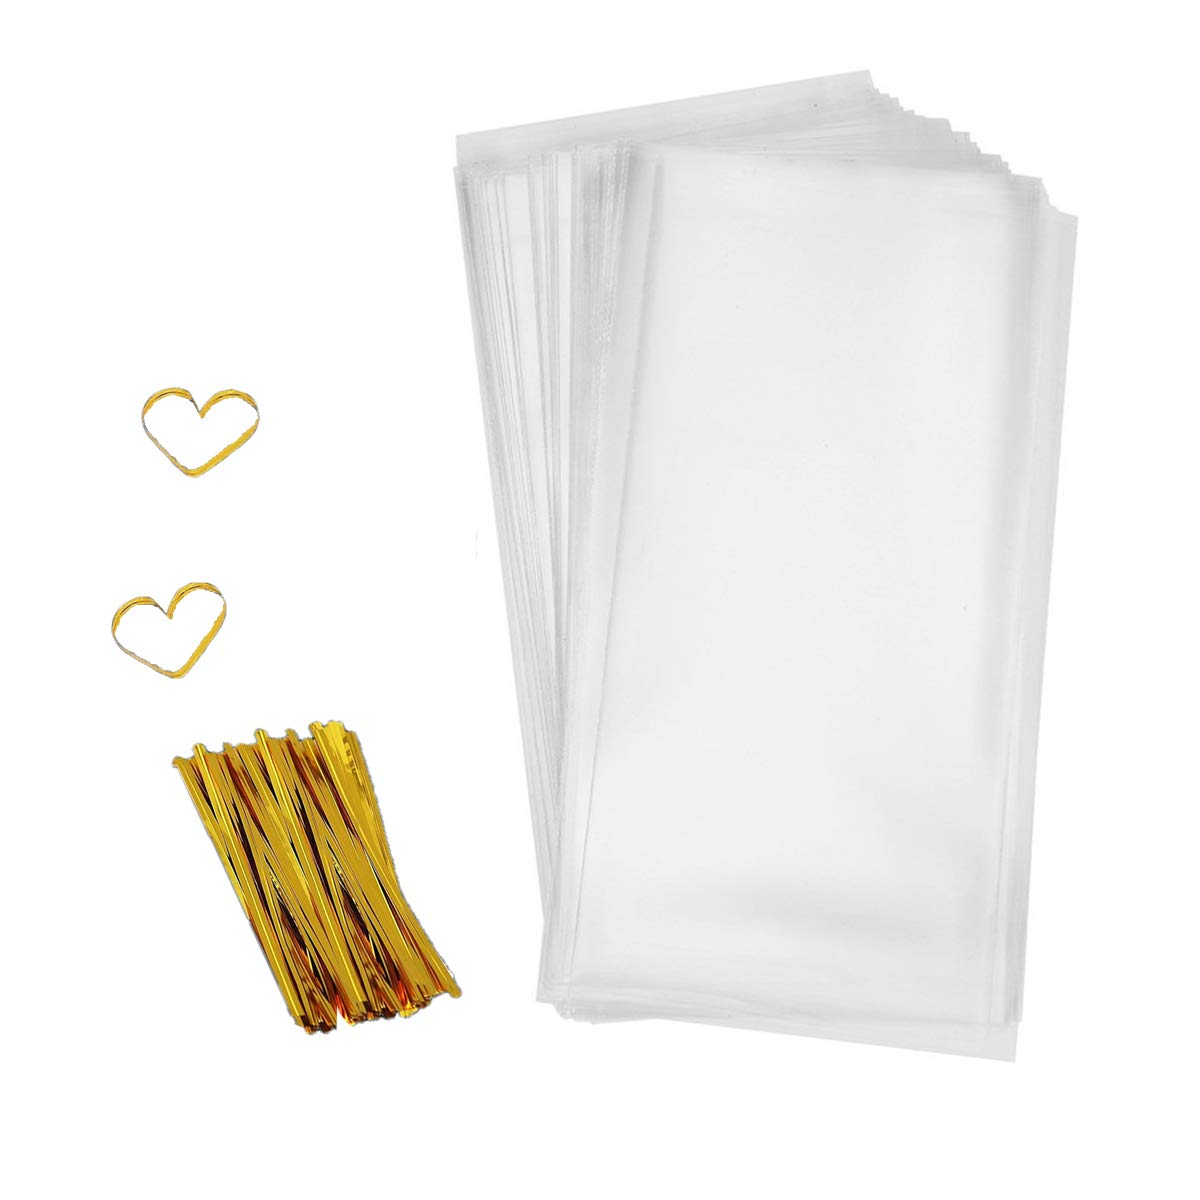 Cellophane Bag 200 PCS Clear Cello Treat Bags Party Favor Bags for Gift Bakery Cookies Candies Dessert with 200 PCS Metallic Twist Ties (4'' by 9'')